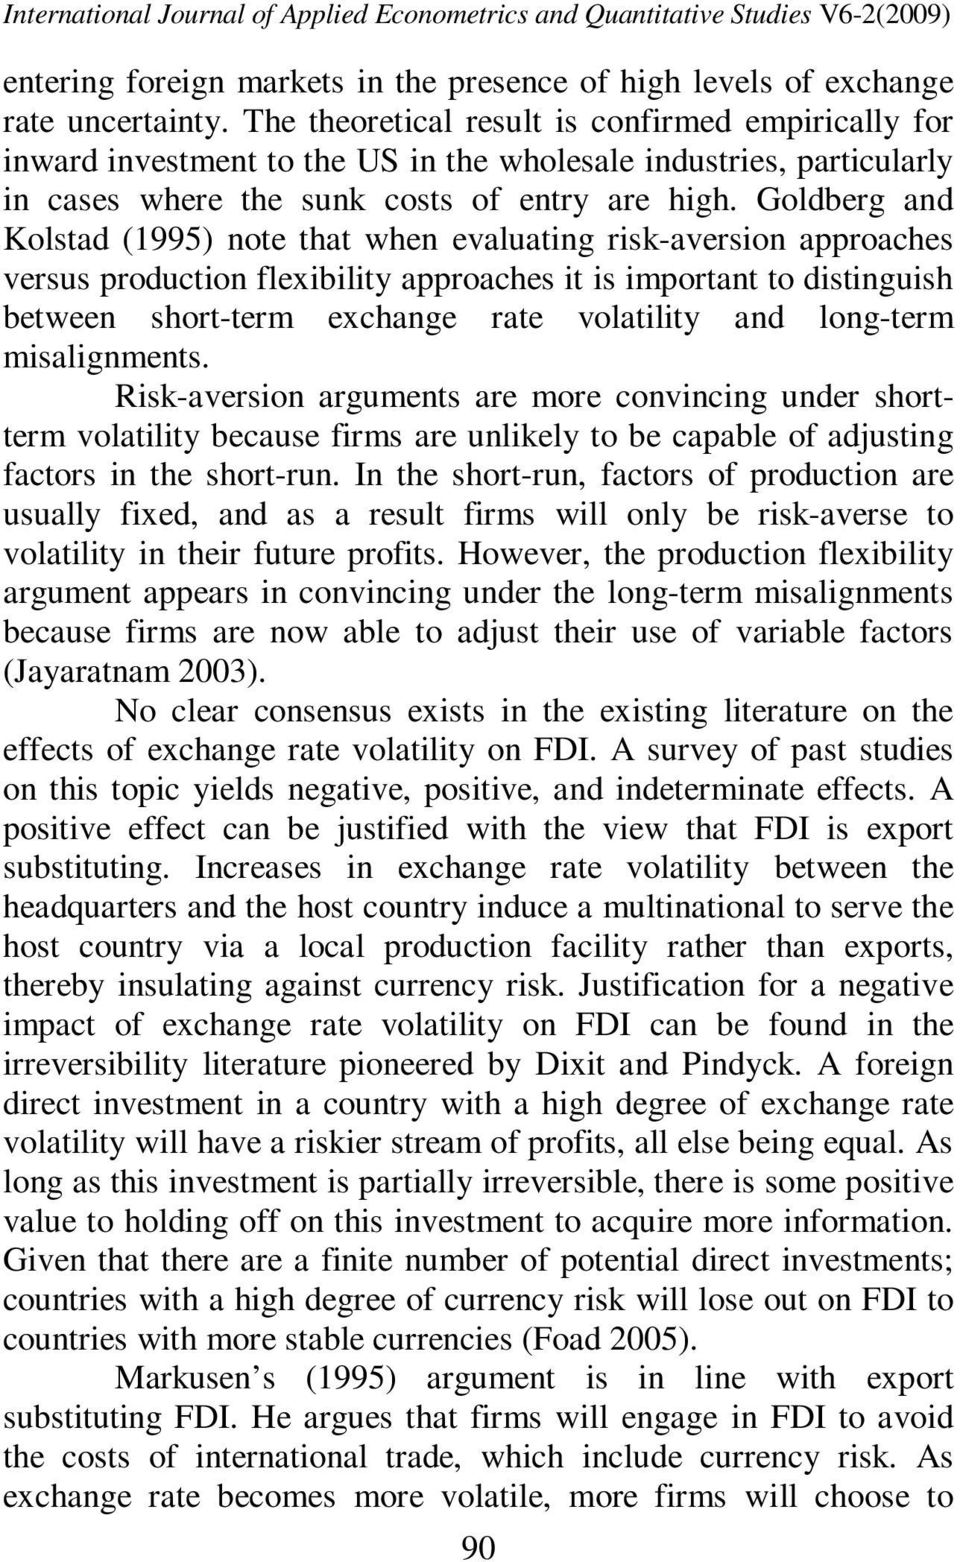 Goldberg and Kolstad (1995) note that when evaluating risk-aversion approaches versus production flexibility approaches it is important to distinguish between short-term exchange rate volatility and